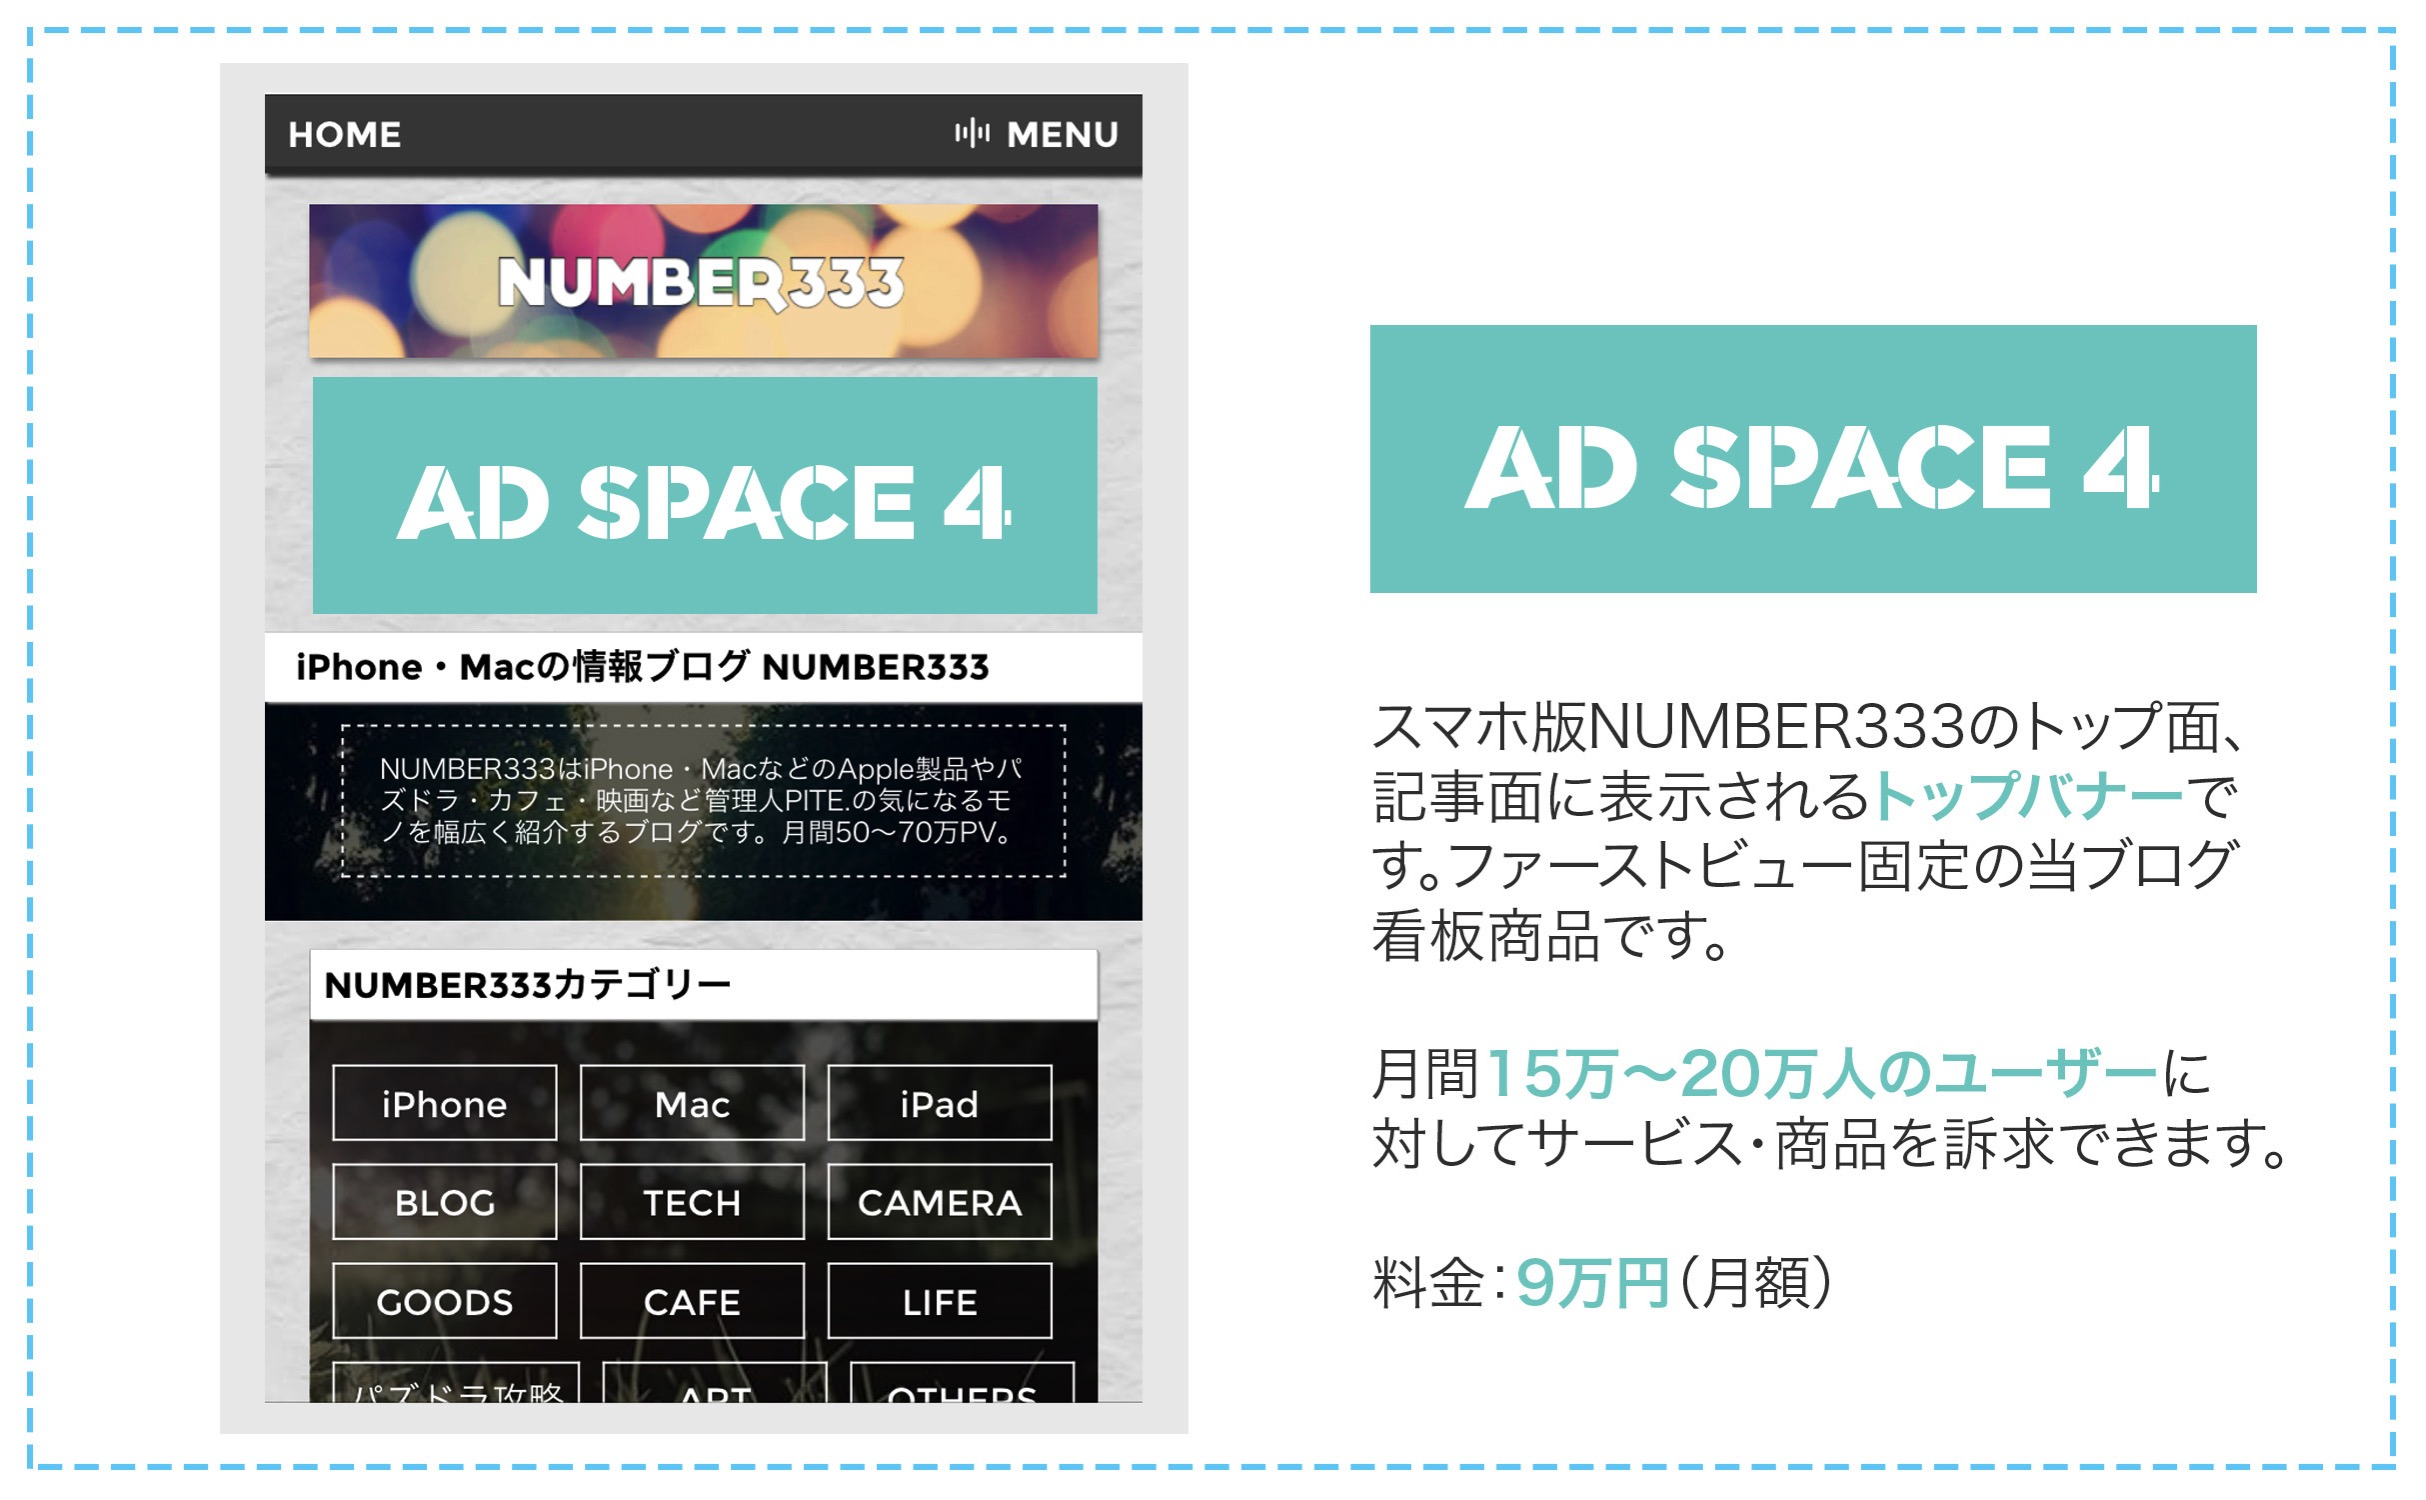 Adspace4